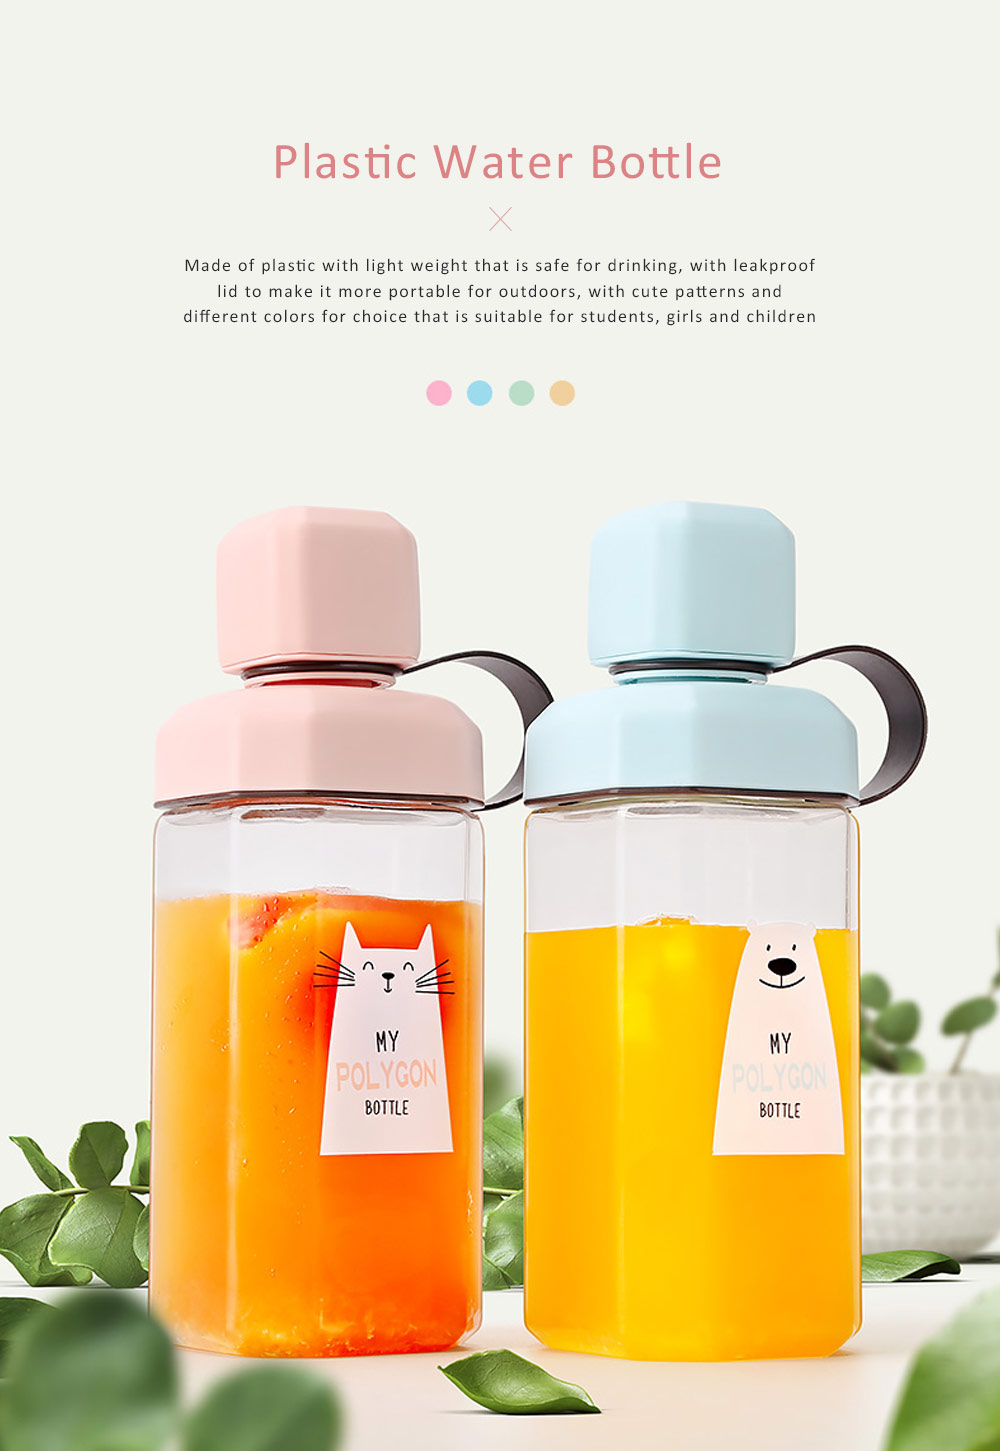 Plastic Water Bottle for Students, Girls, Children, Leakproof Drinking Bottle with Light Weight, Portable Water Bottle for Outdoors, Drinking Bottle with Cute Patterns 0